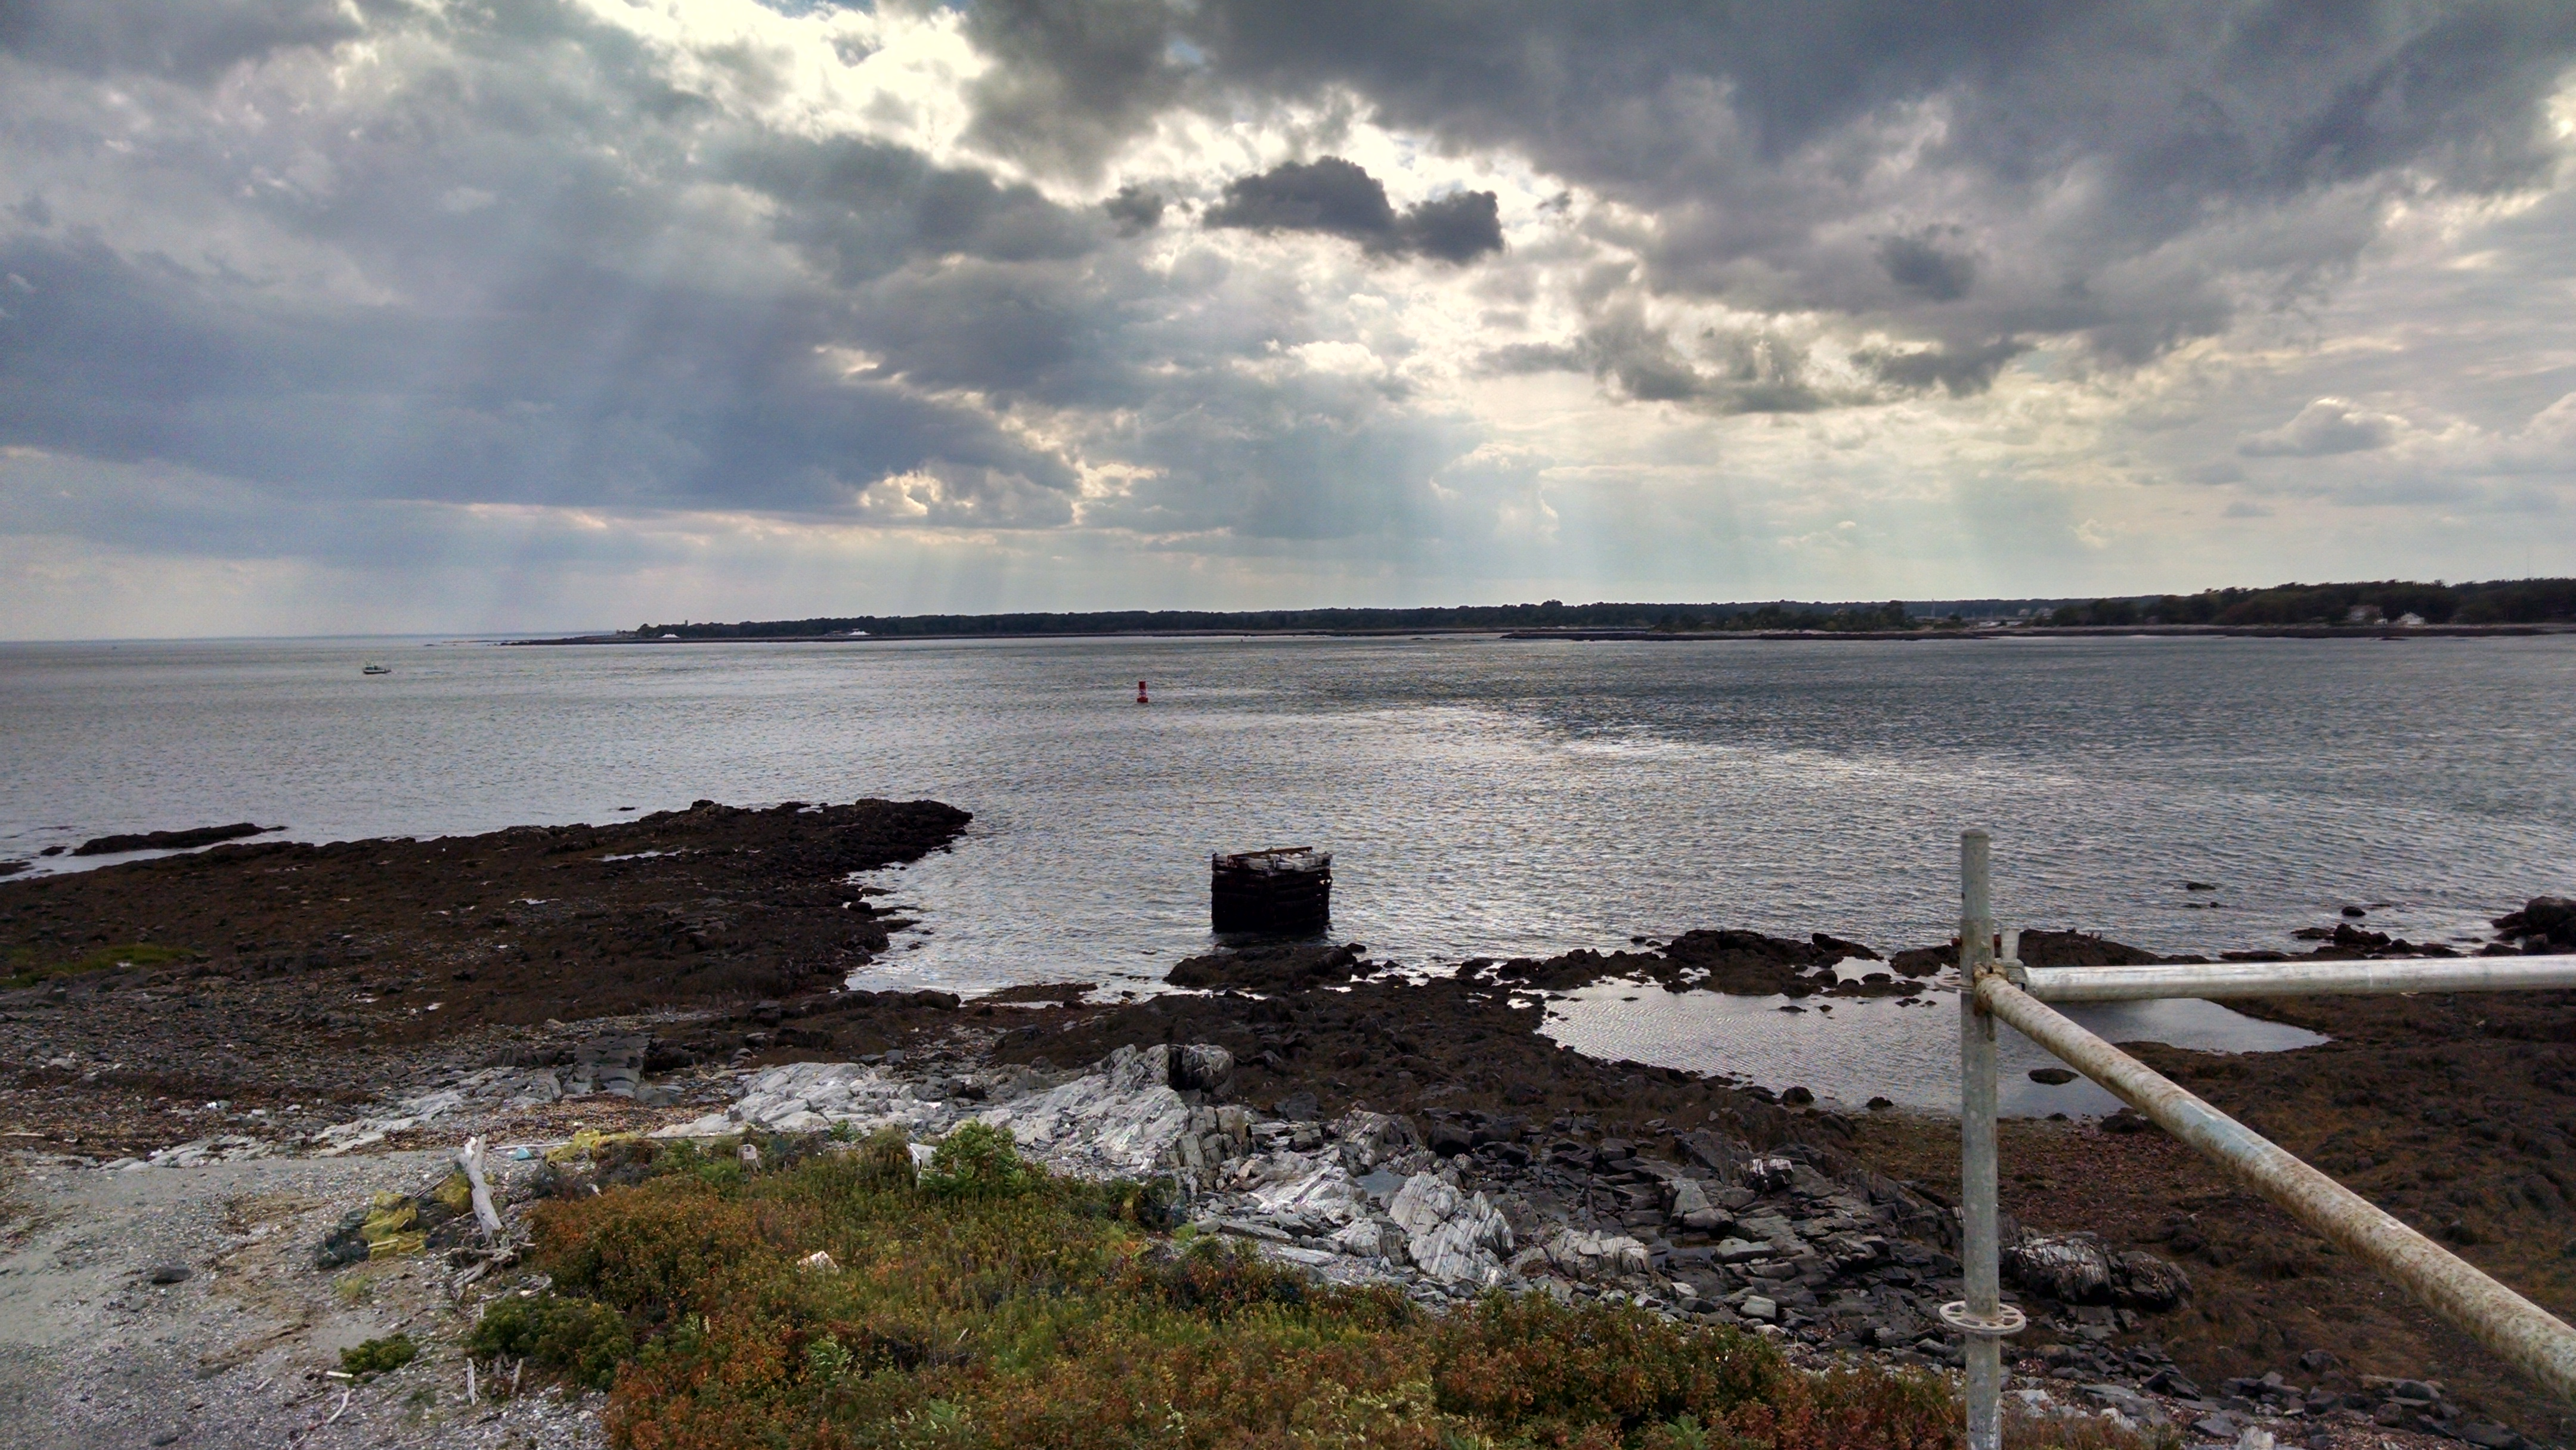 Sub net pier from the top of the Wood Island staging